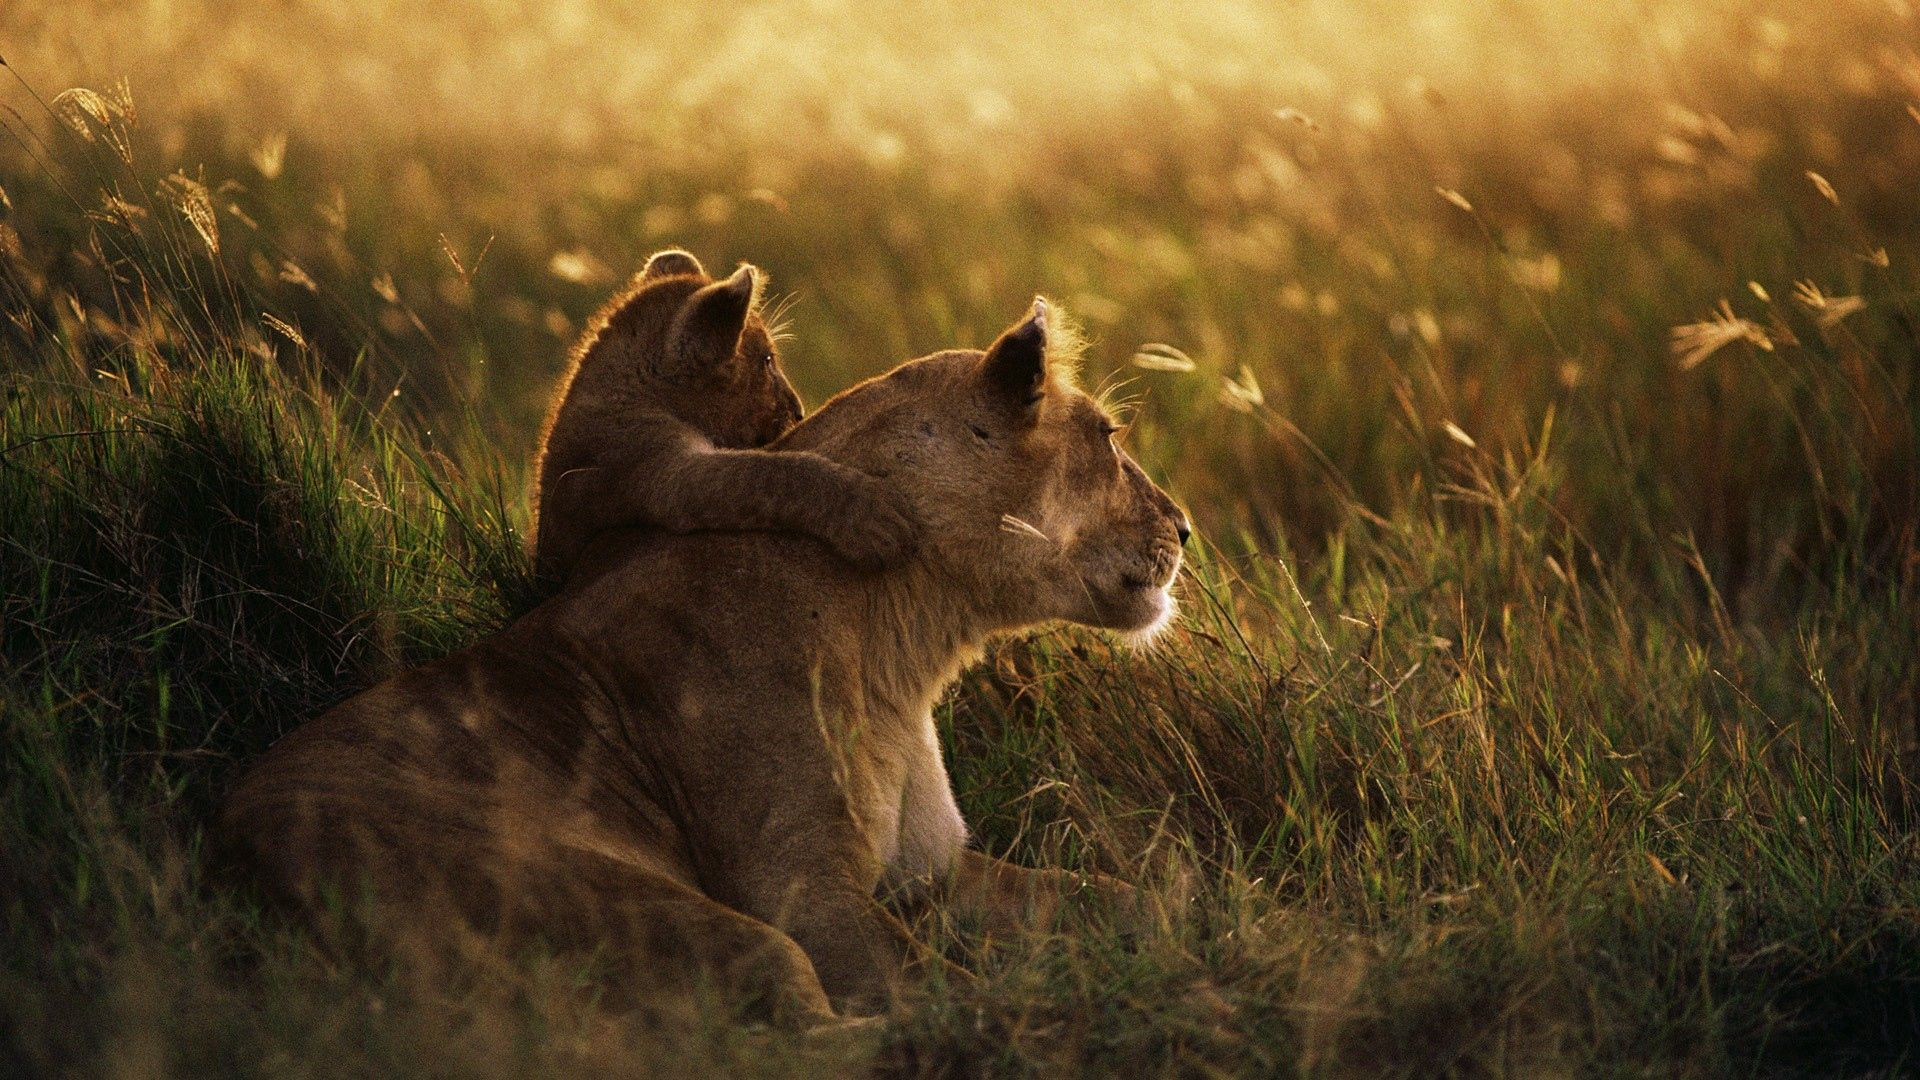 84452 download wallpaper Animals, Lioness, Lion, Sunset, Young, Joey, Care, Grass, Shadow screensavers and pictures for free